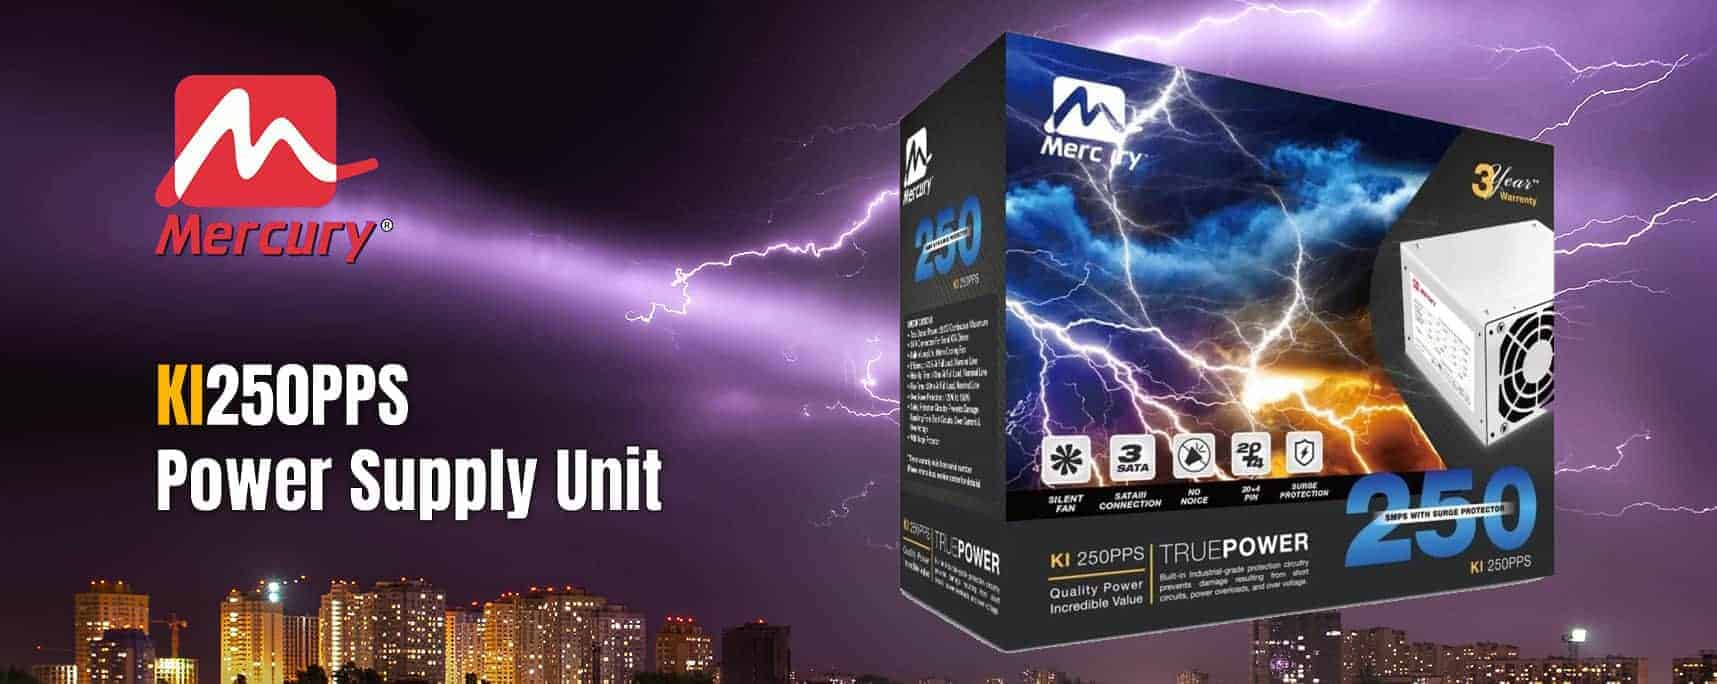 Mercury Launches KI250PPS PSU With High Efficiency for Power Fluctuations - 2